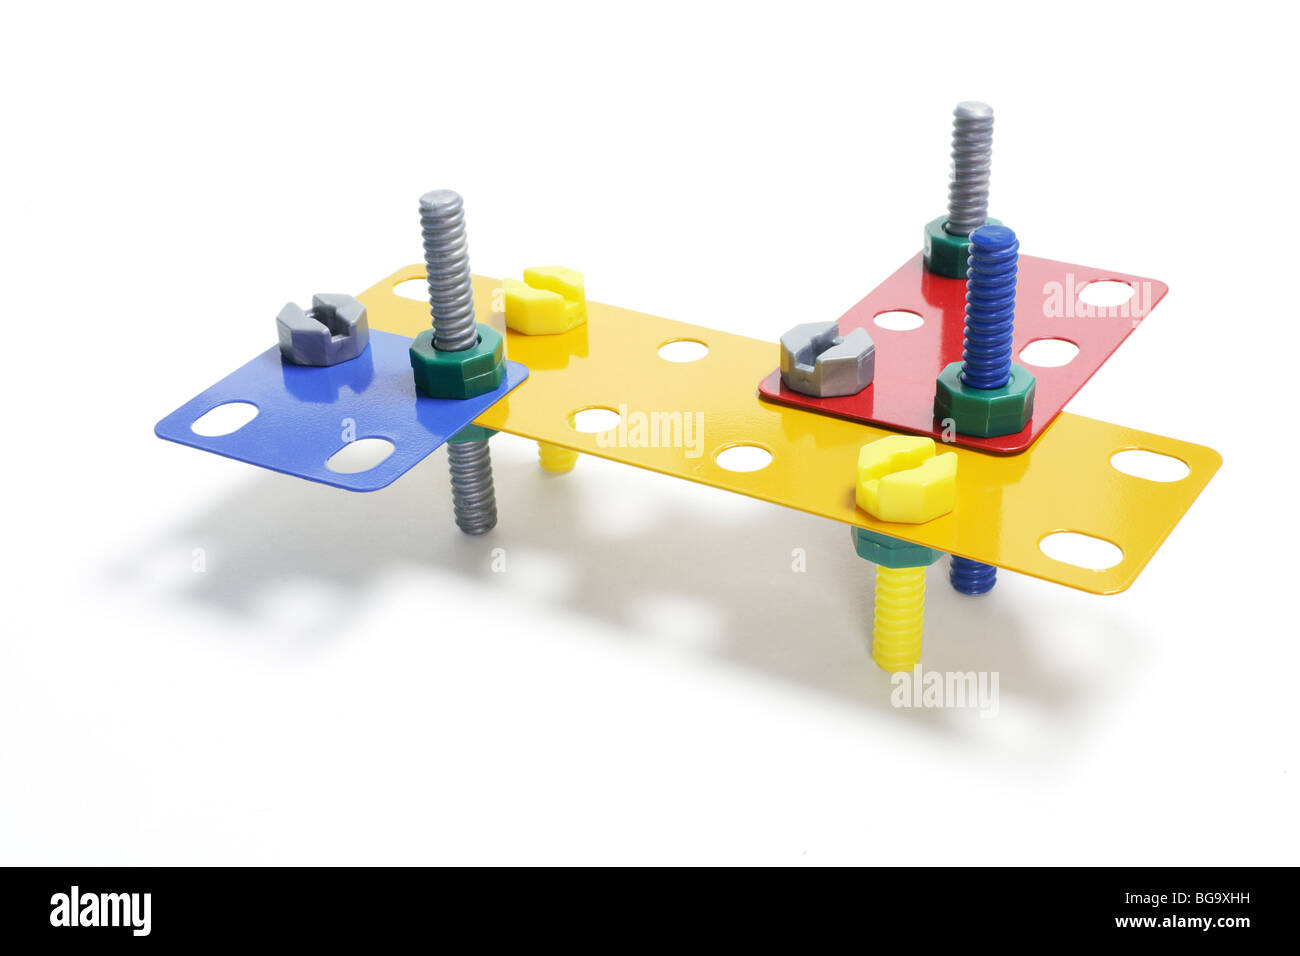 Toy Construction Set - Stock Image